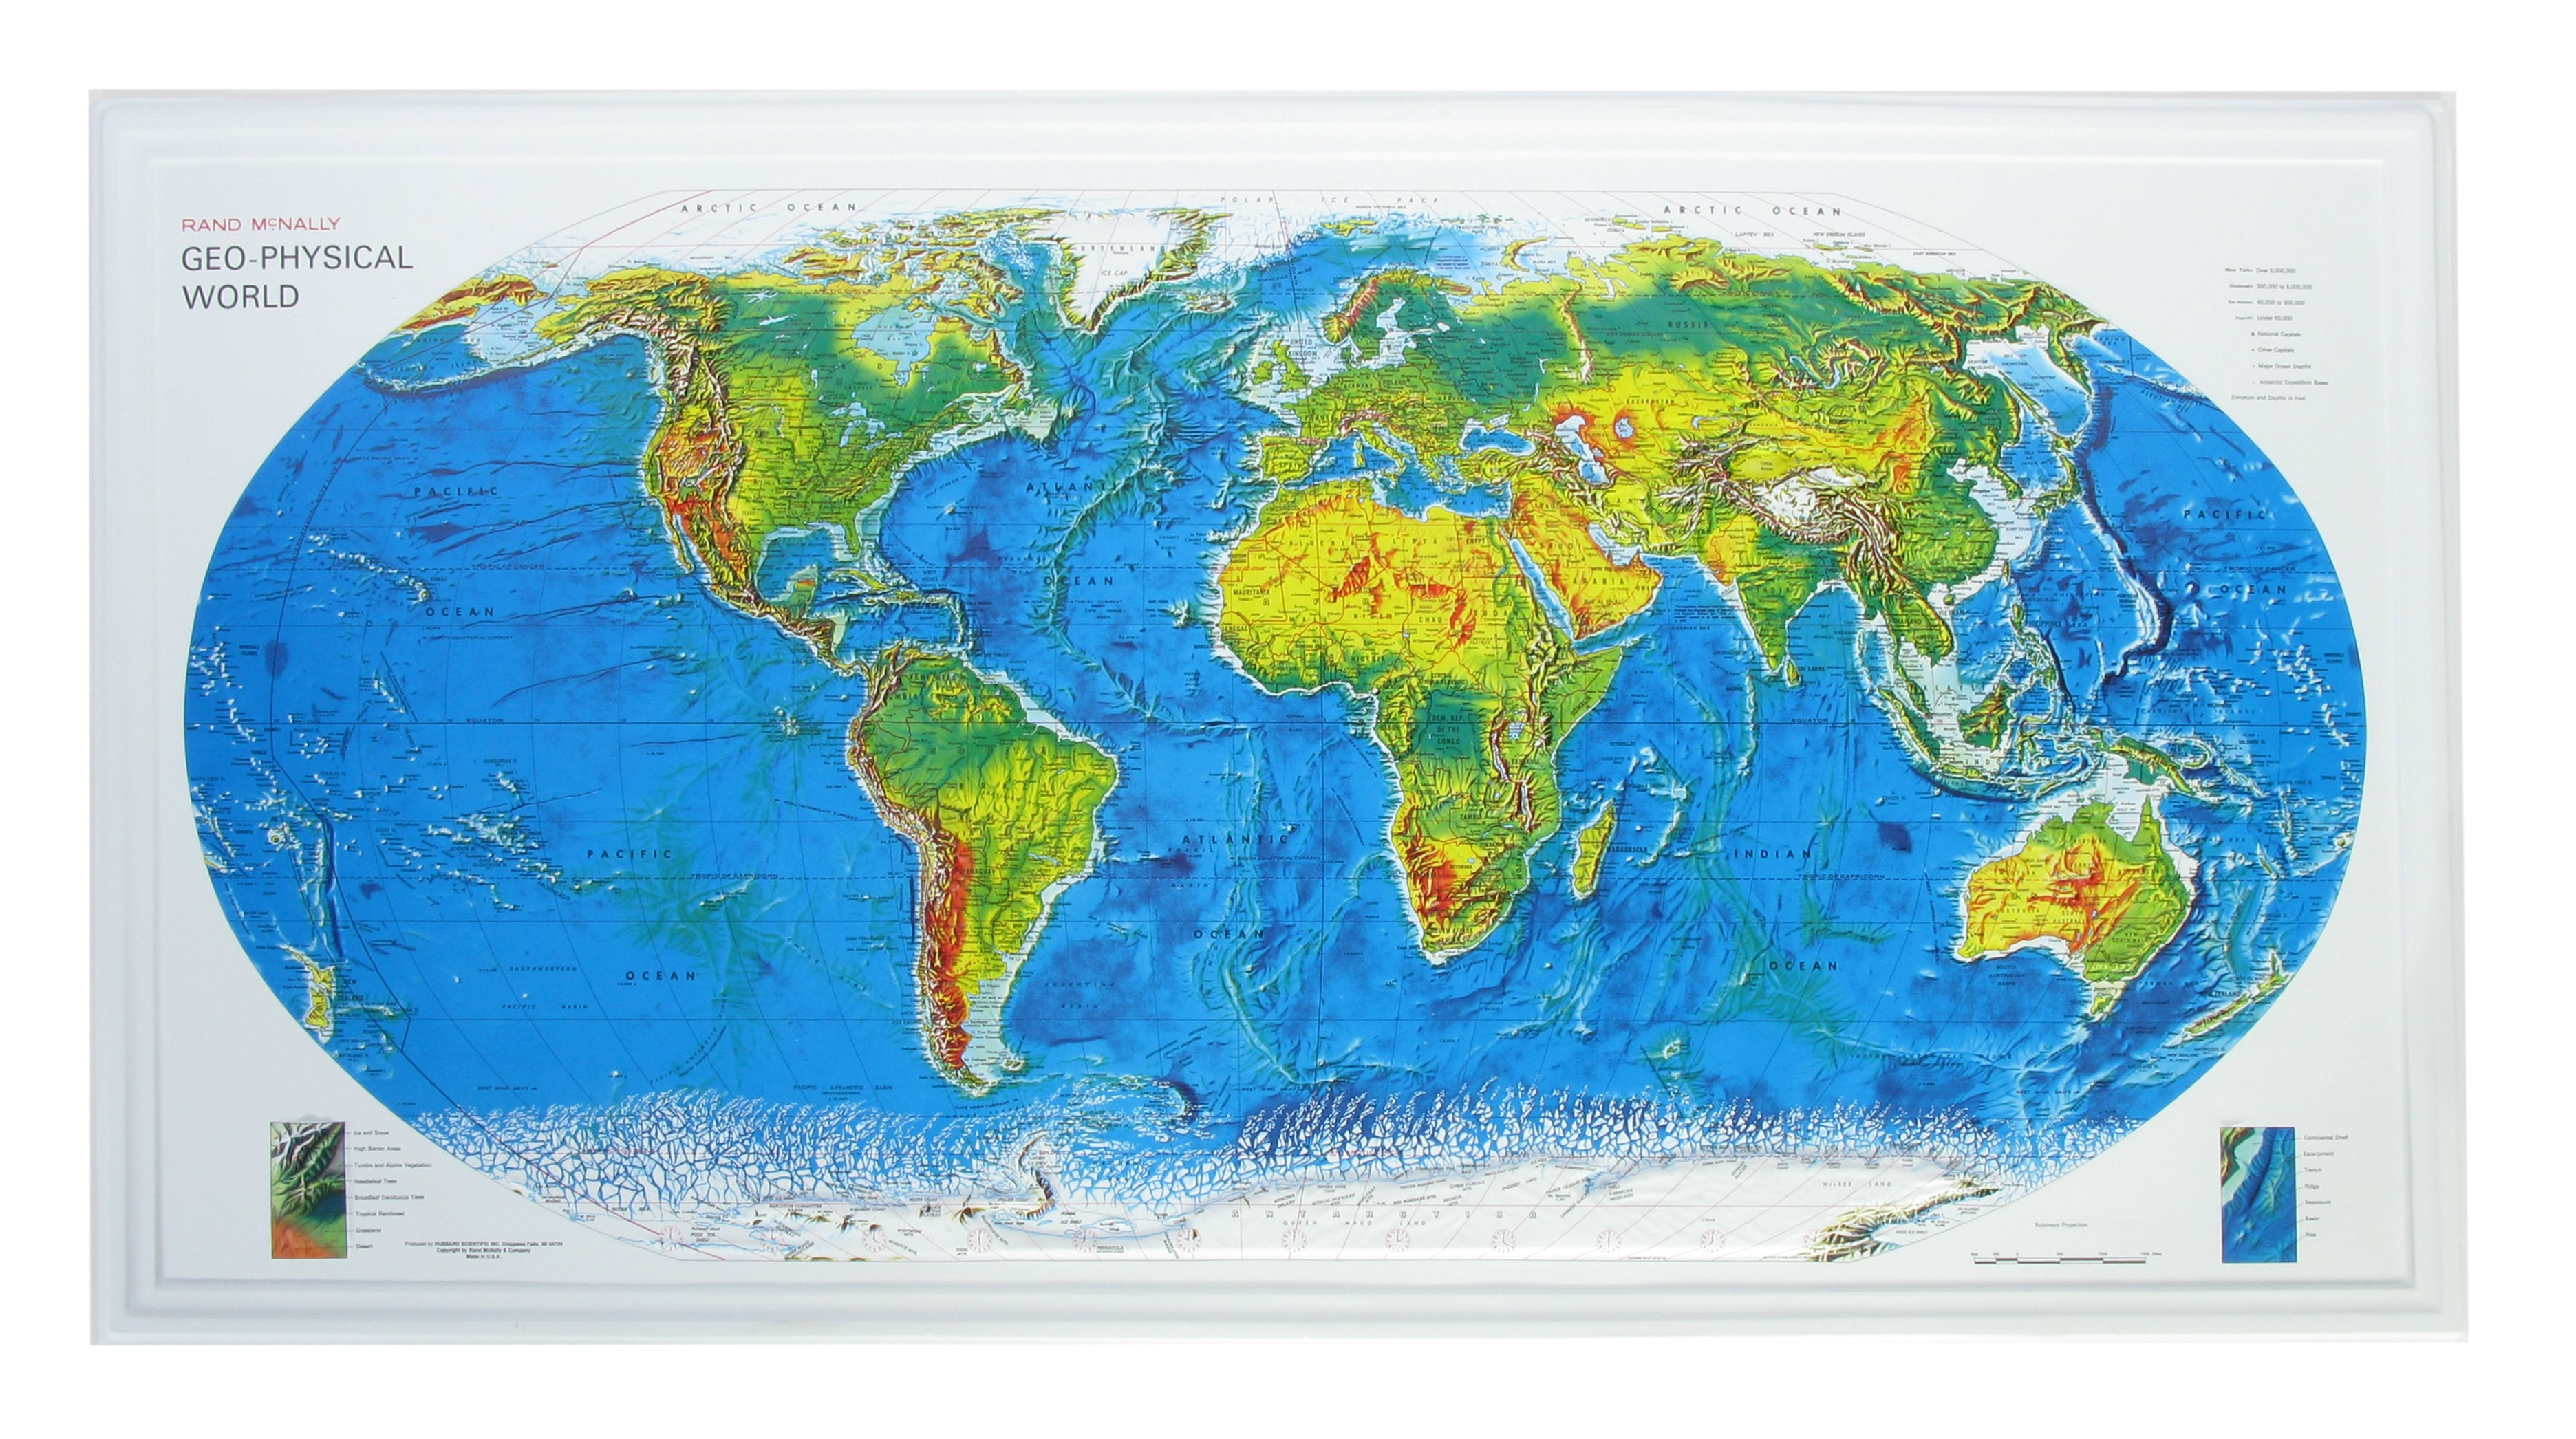 434g 3d relief world map rand mc nally world maps gumiabroncs Images